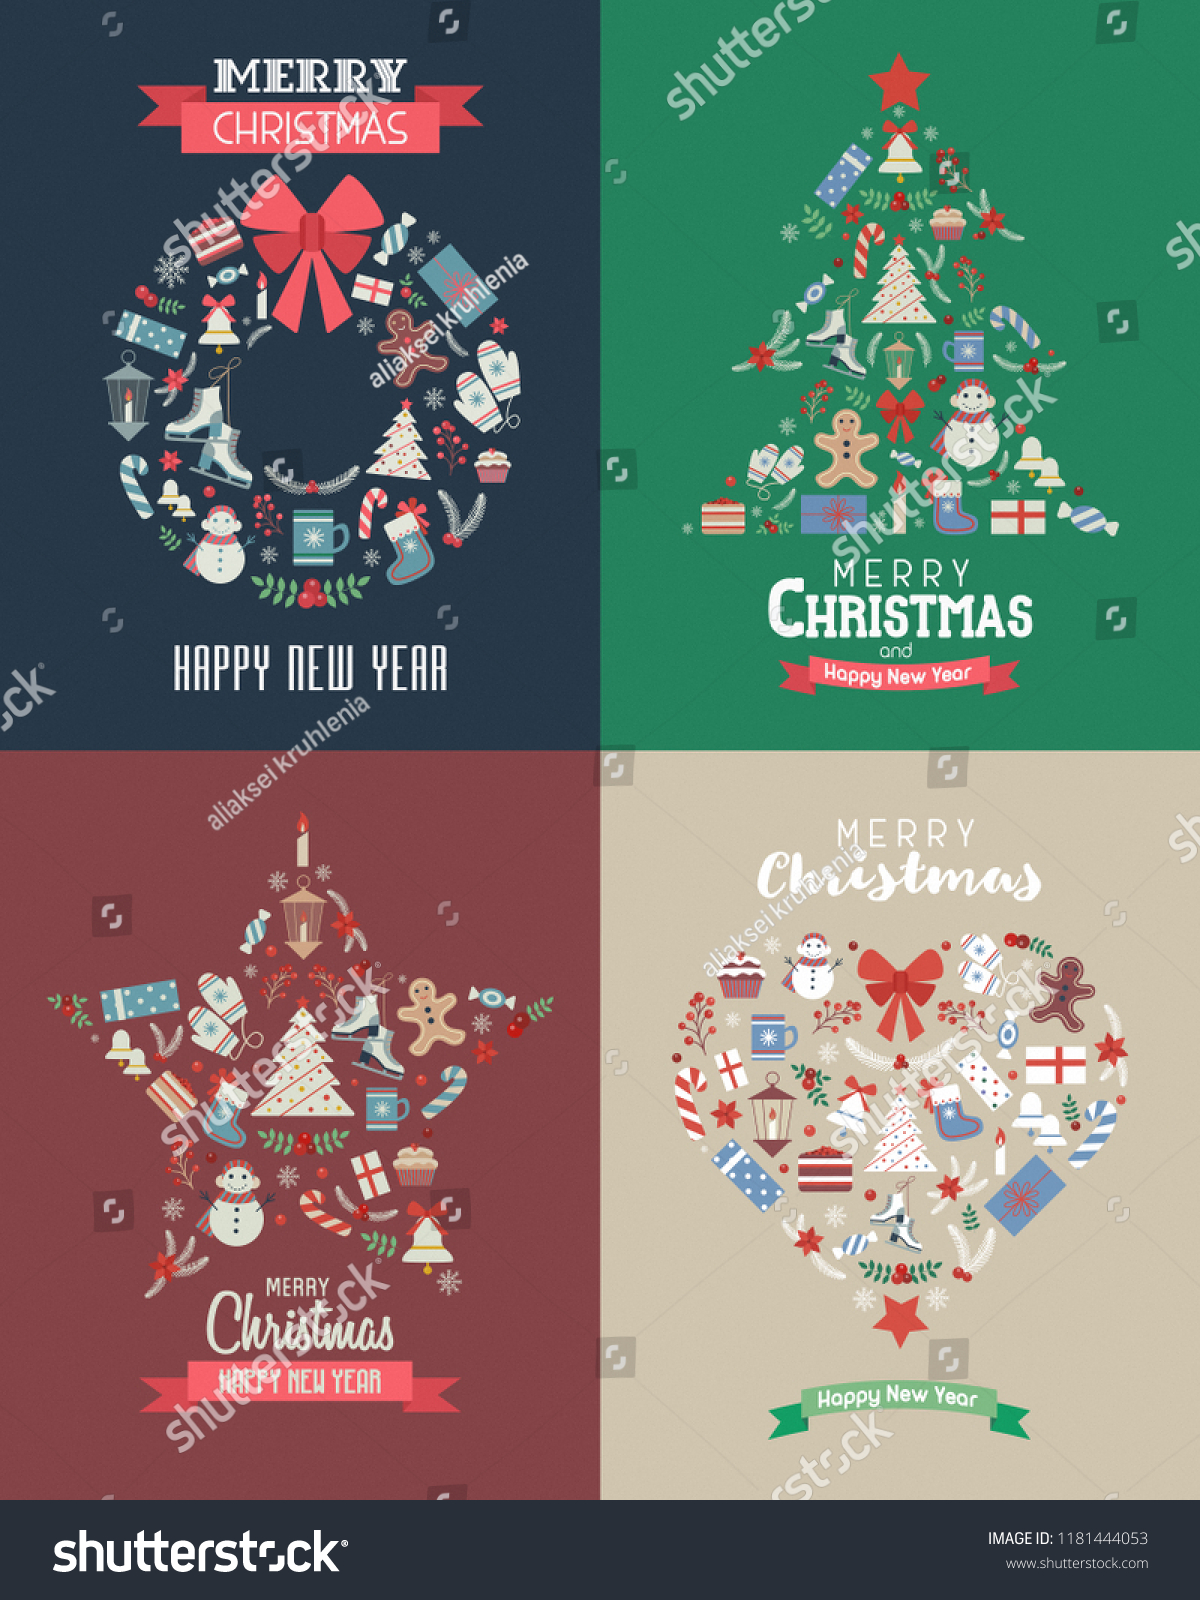 Merry Christmas Happy New Year Vintage Stock Vector Royalty Free